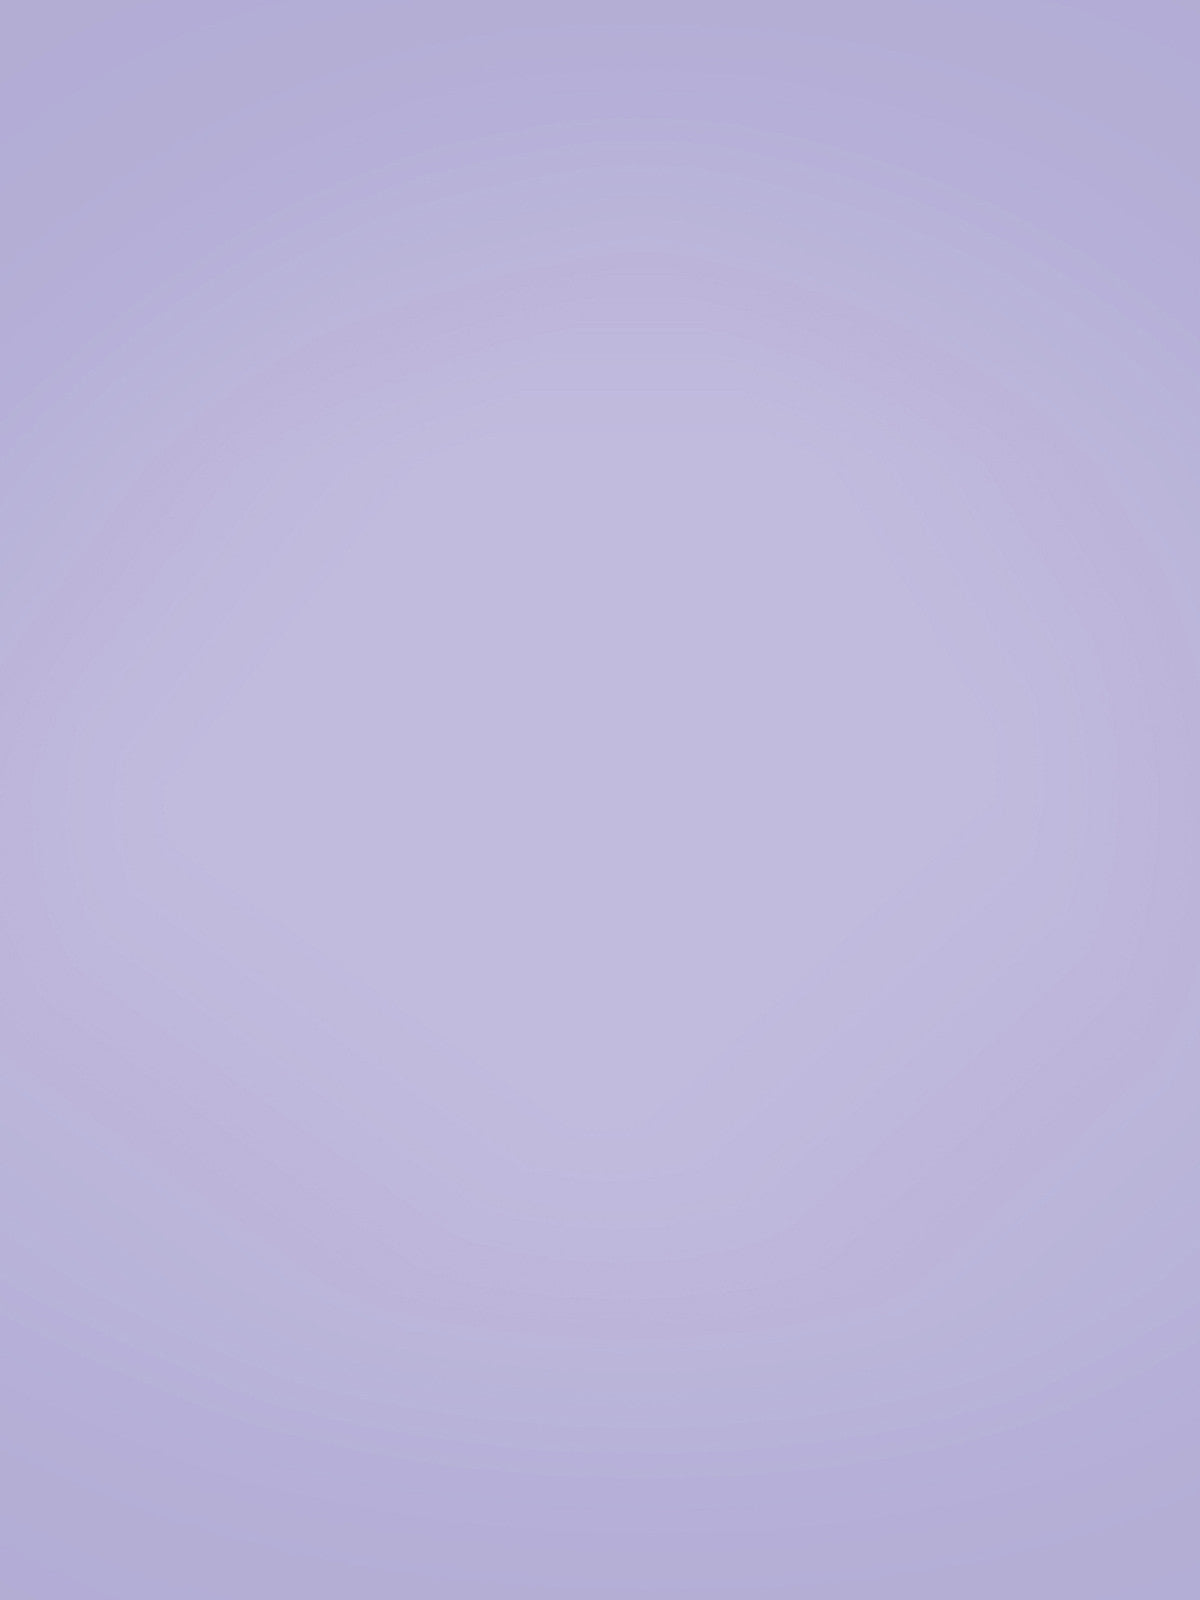 Purple Solid Printed Photo Background / 9100 - DropPlace